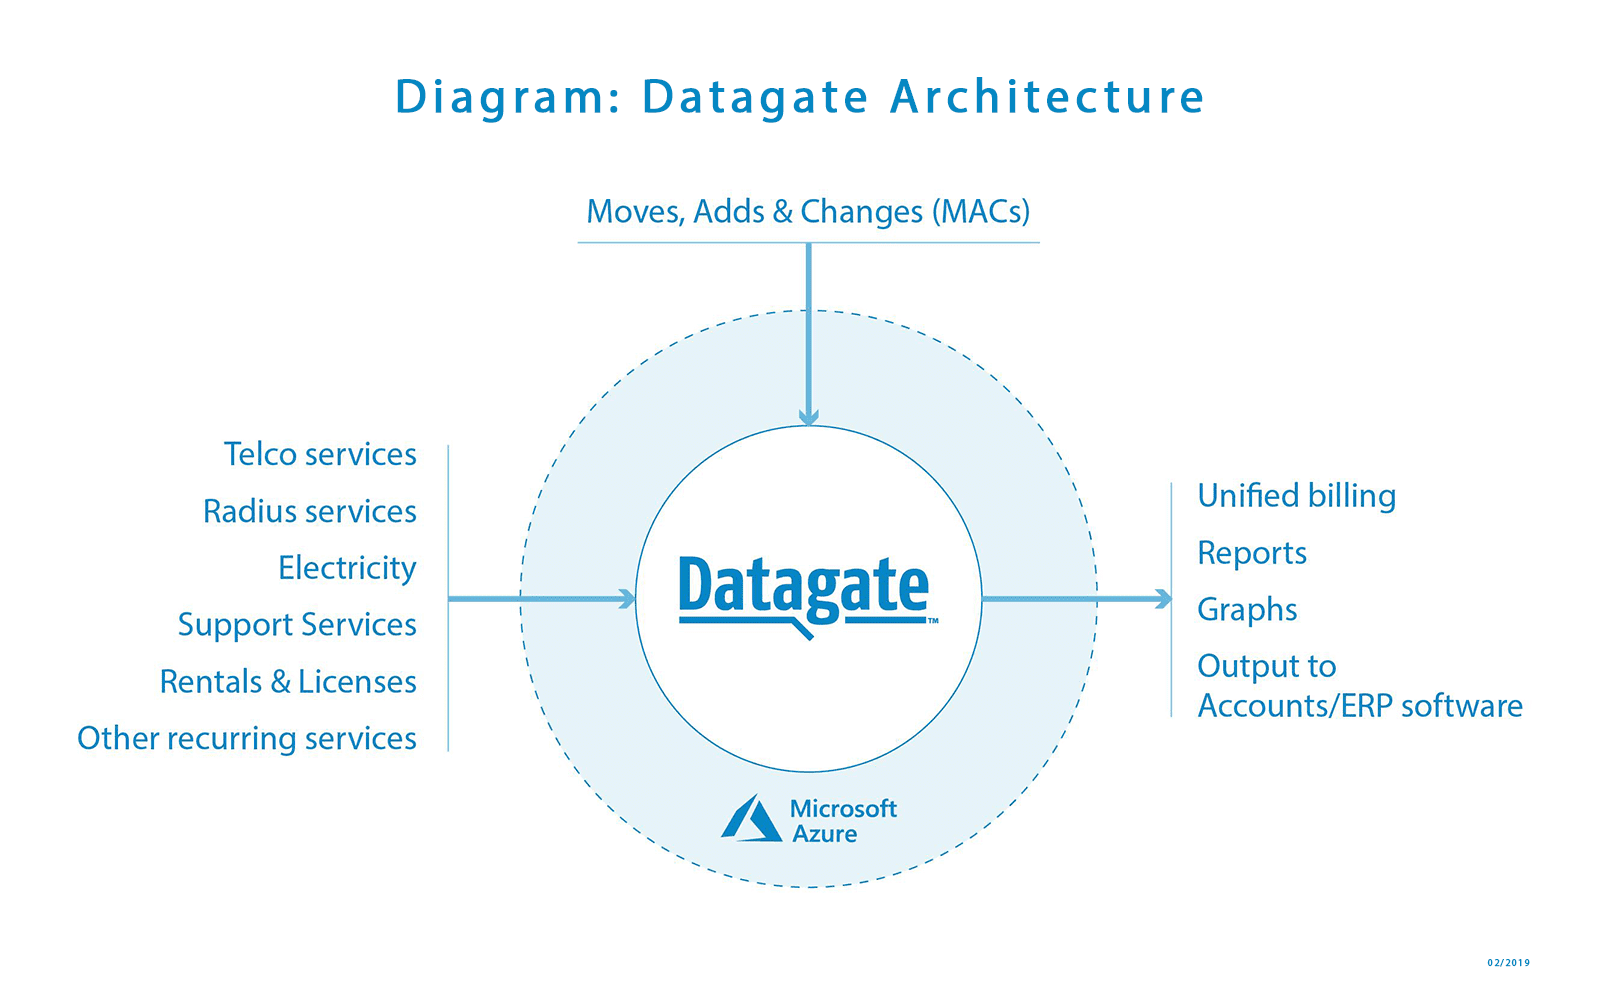 Diagram: Datagate architecture | February 2019